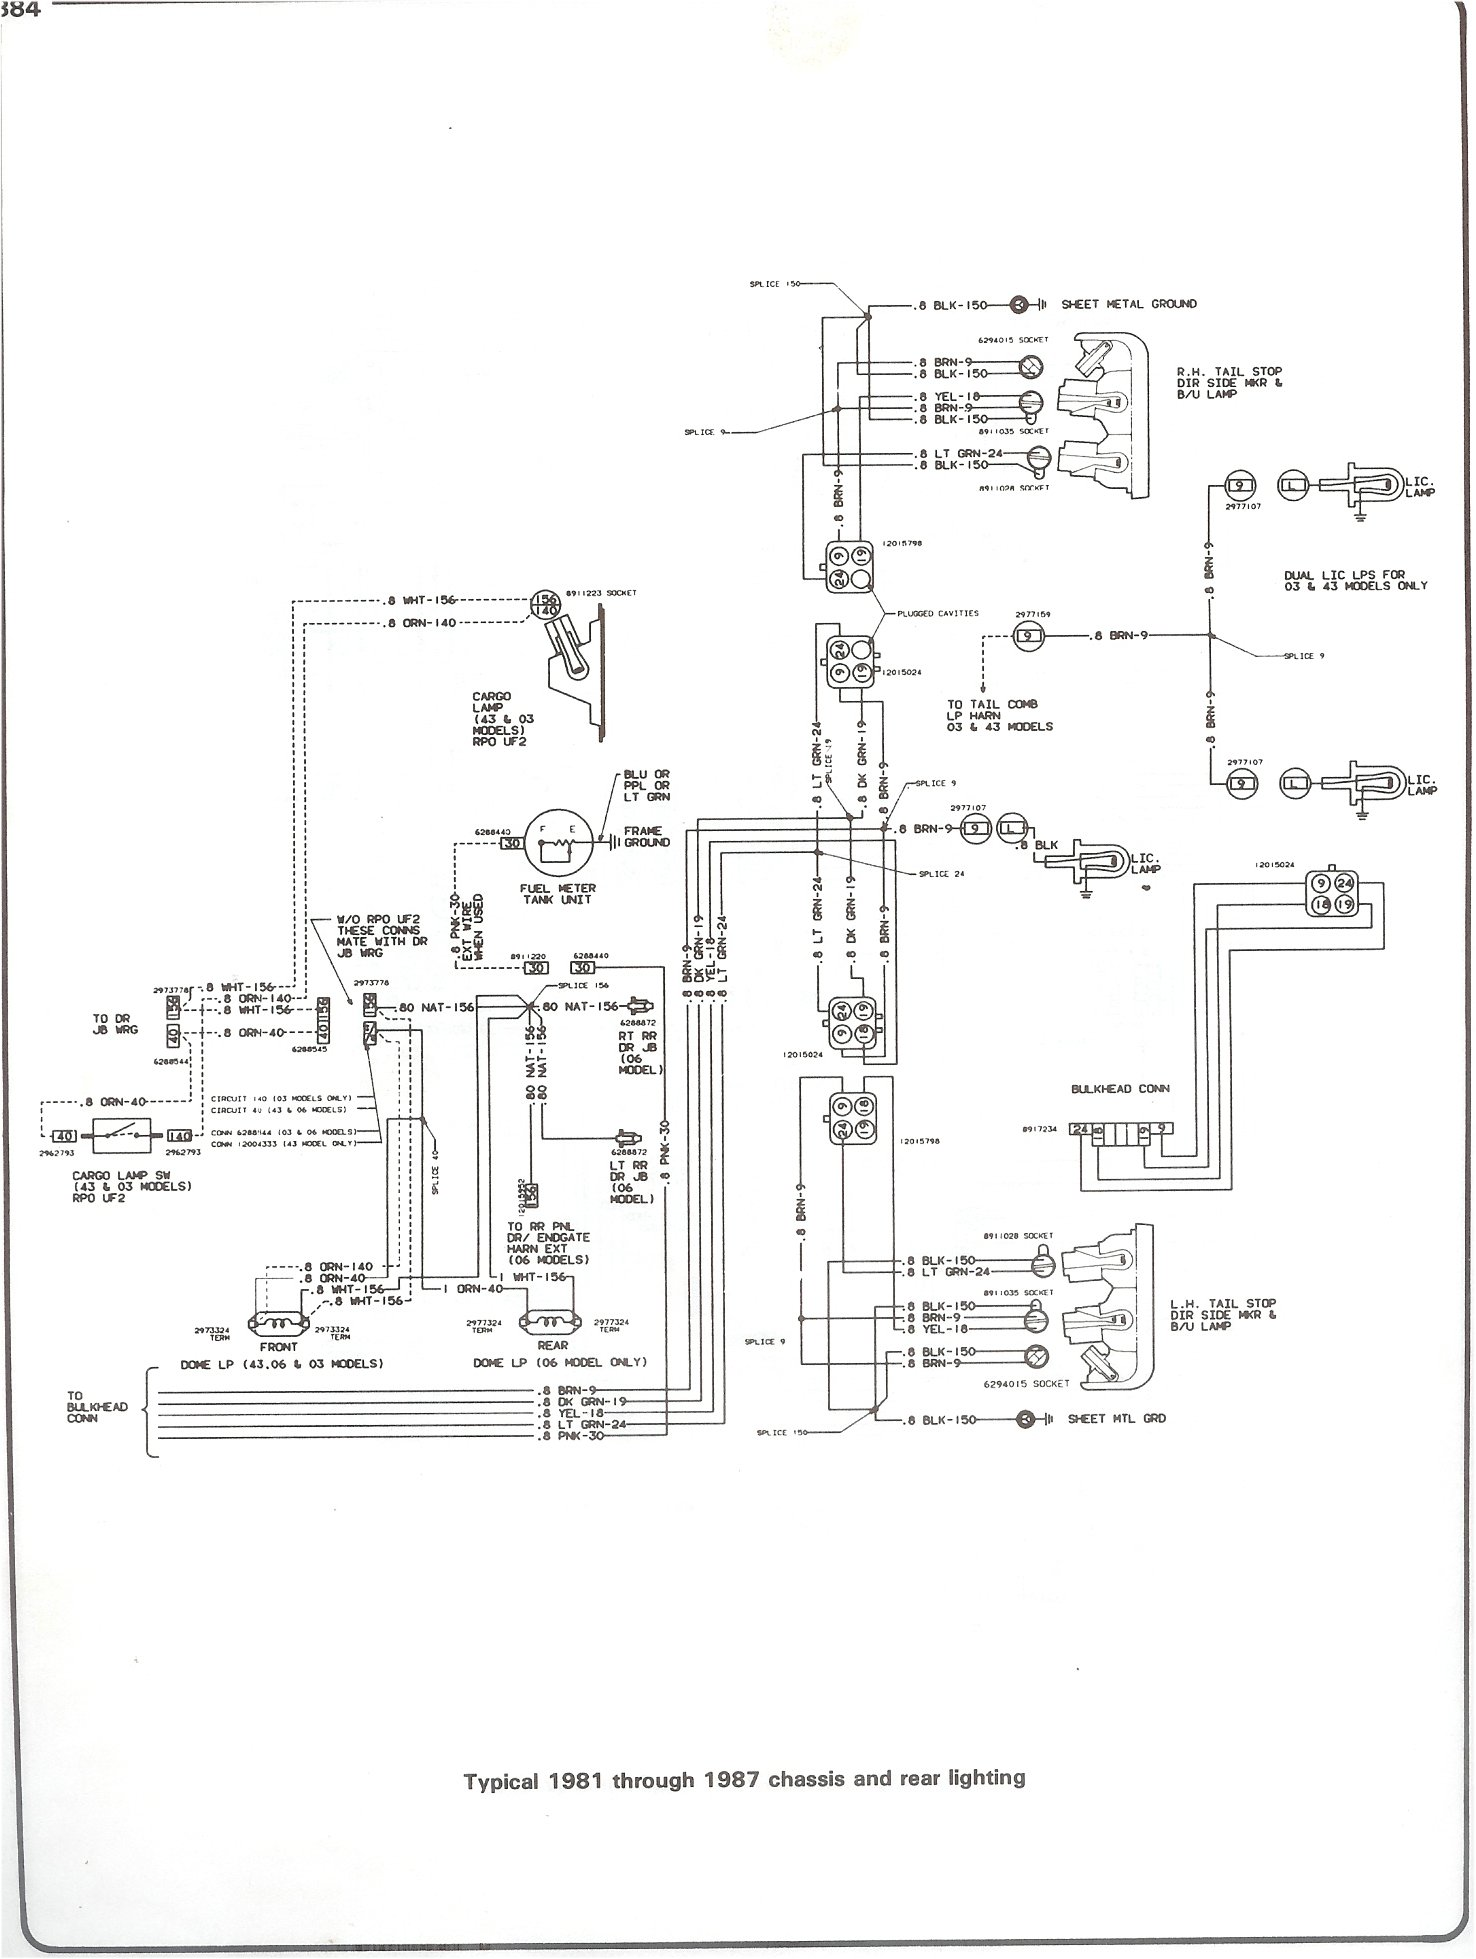 Dual Fuel Tank Wiring Diagram Chevy C30